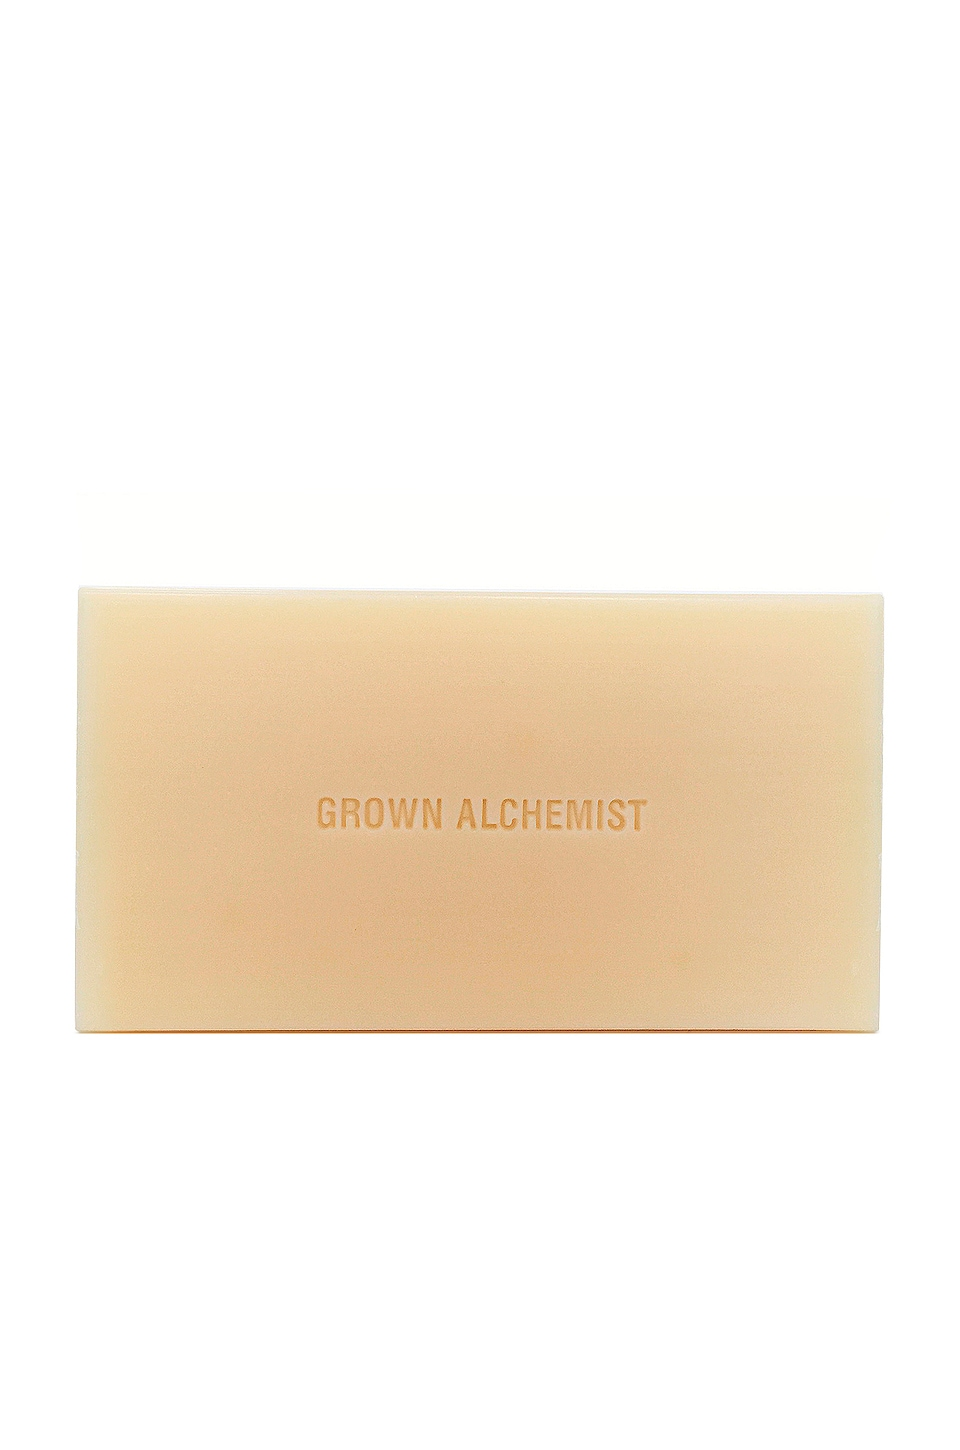 Grown Alchemist Body Cleansing Bar Geranium Leaf & Bergamot & Patchouli